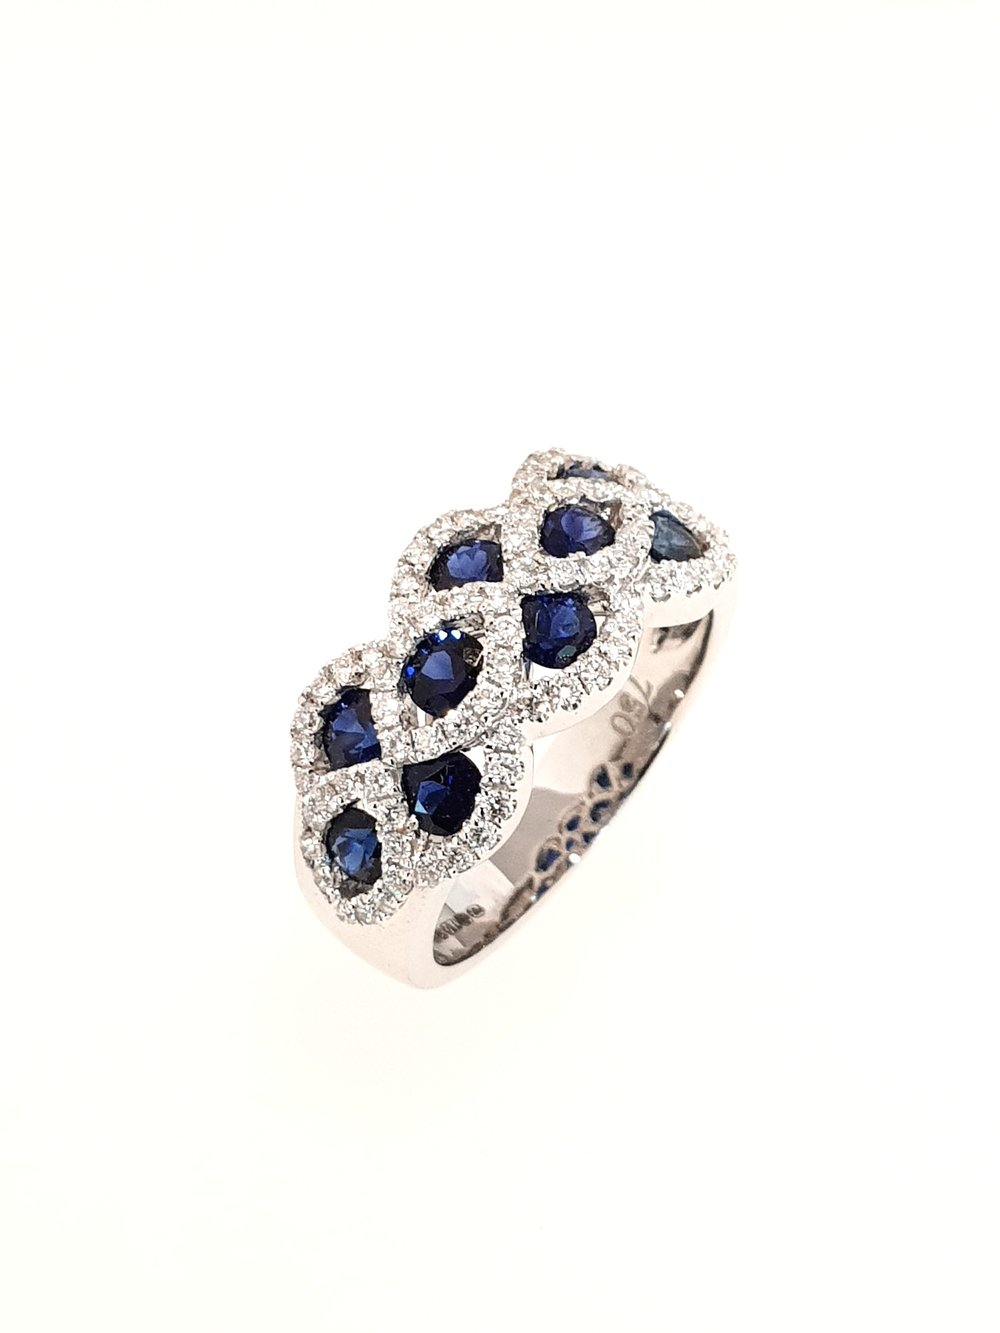 18ct White Gold Sapphire & Diamond Ring  Diamond: .50ct, G, Si1  Stock Code: N8943  £3800